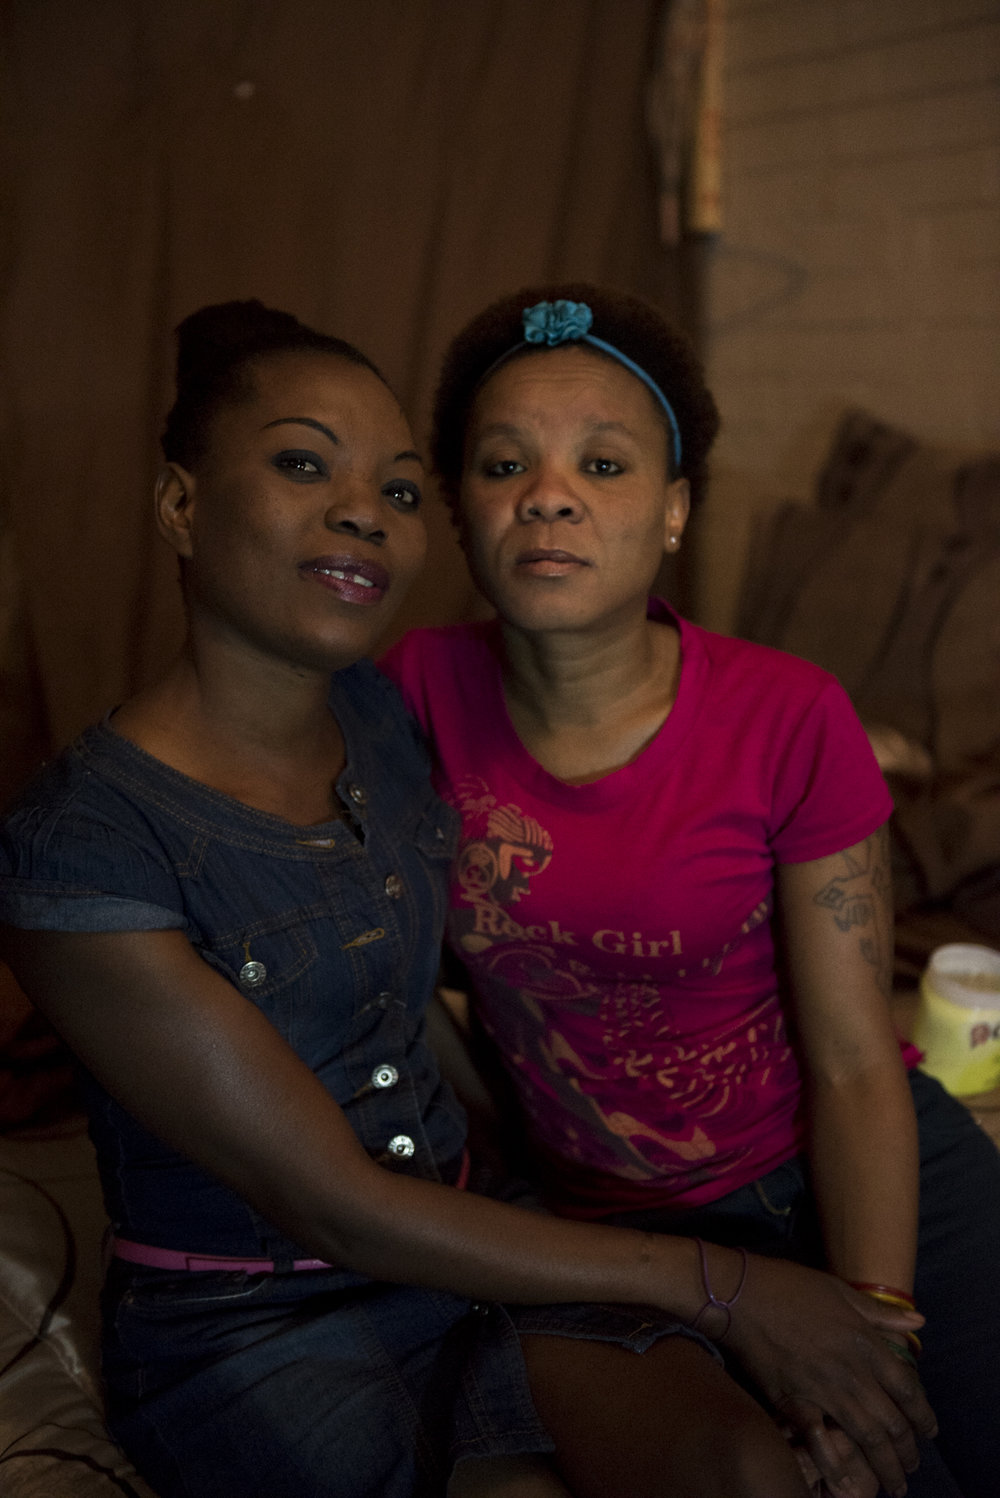 Lufuno Nevhulaudzi poses for a picture with her friend, Yanga Mpengu, a two year resident, in her basement room at the Moth building in Joubert Park on Wednesday, Aug. 5, 2015.